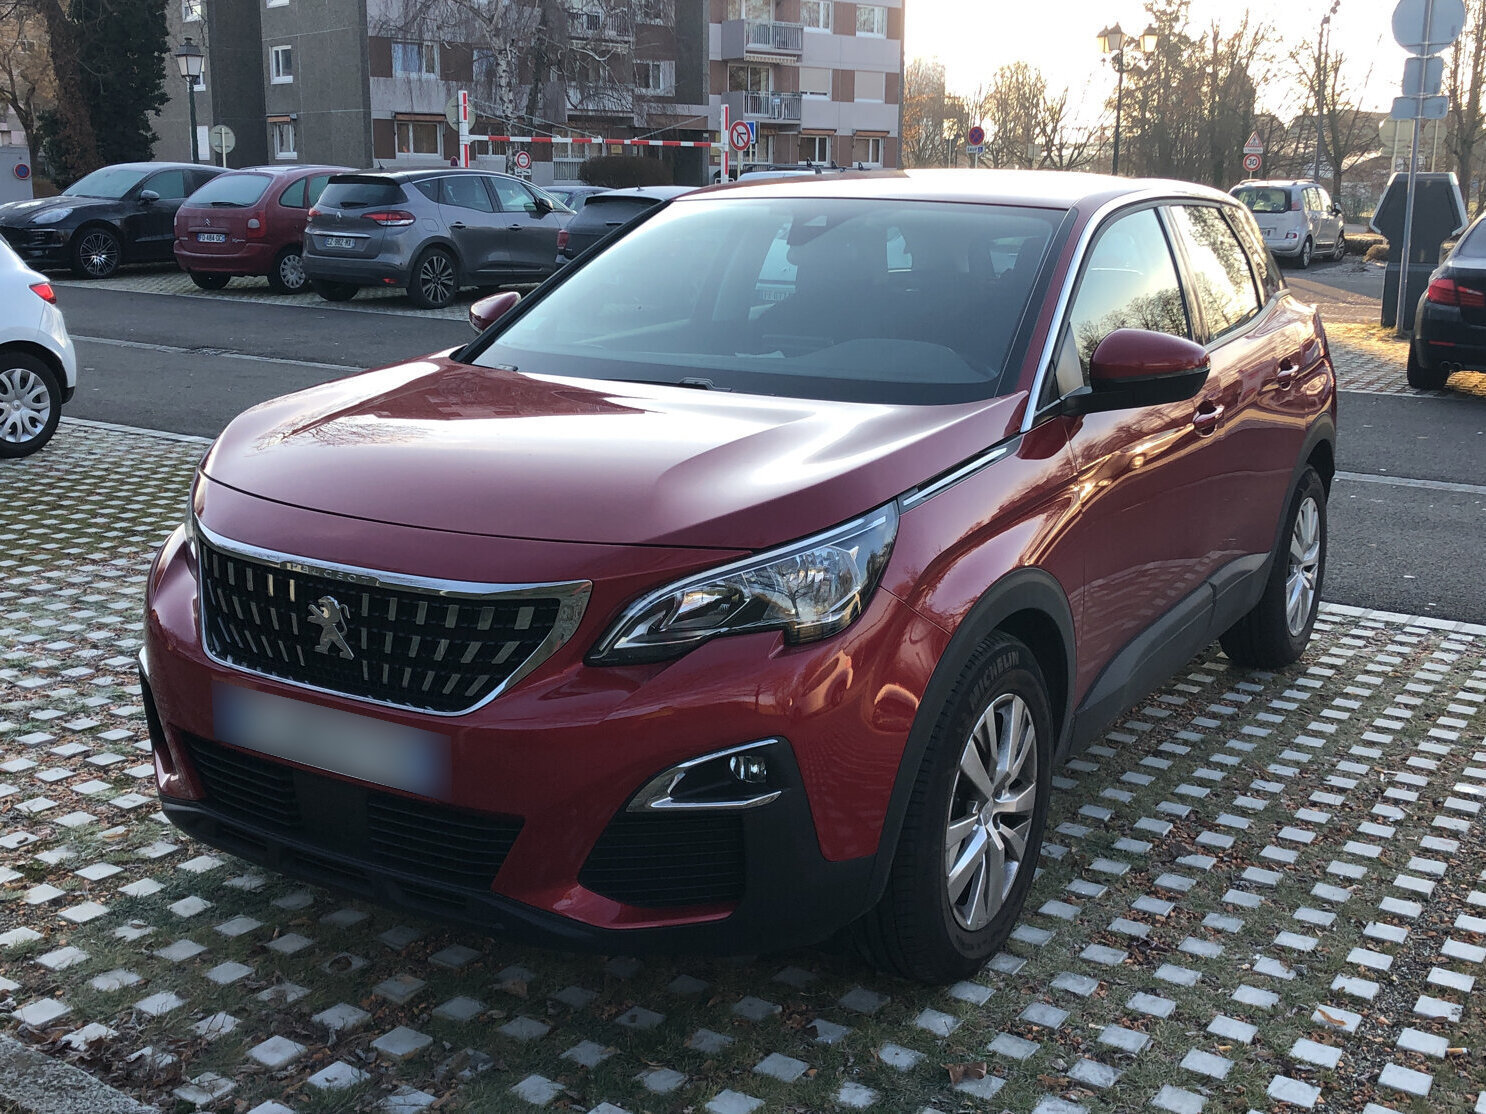 PEUGEOT 3008 GENERATION-II 1.5 BLUEHDI 130 ACTIVE START-STOP